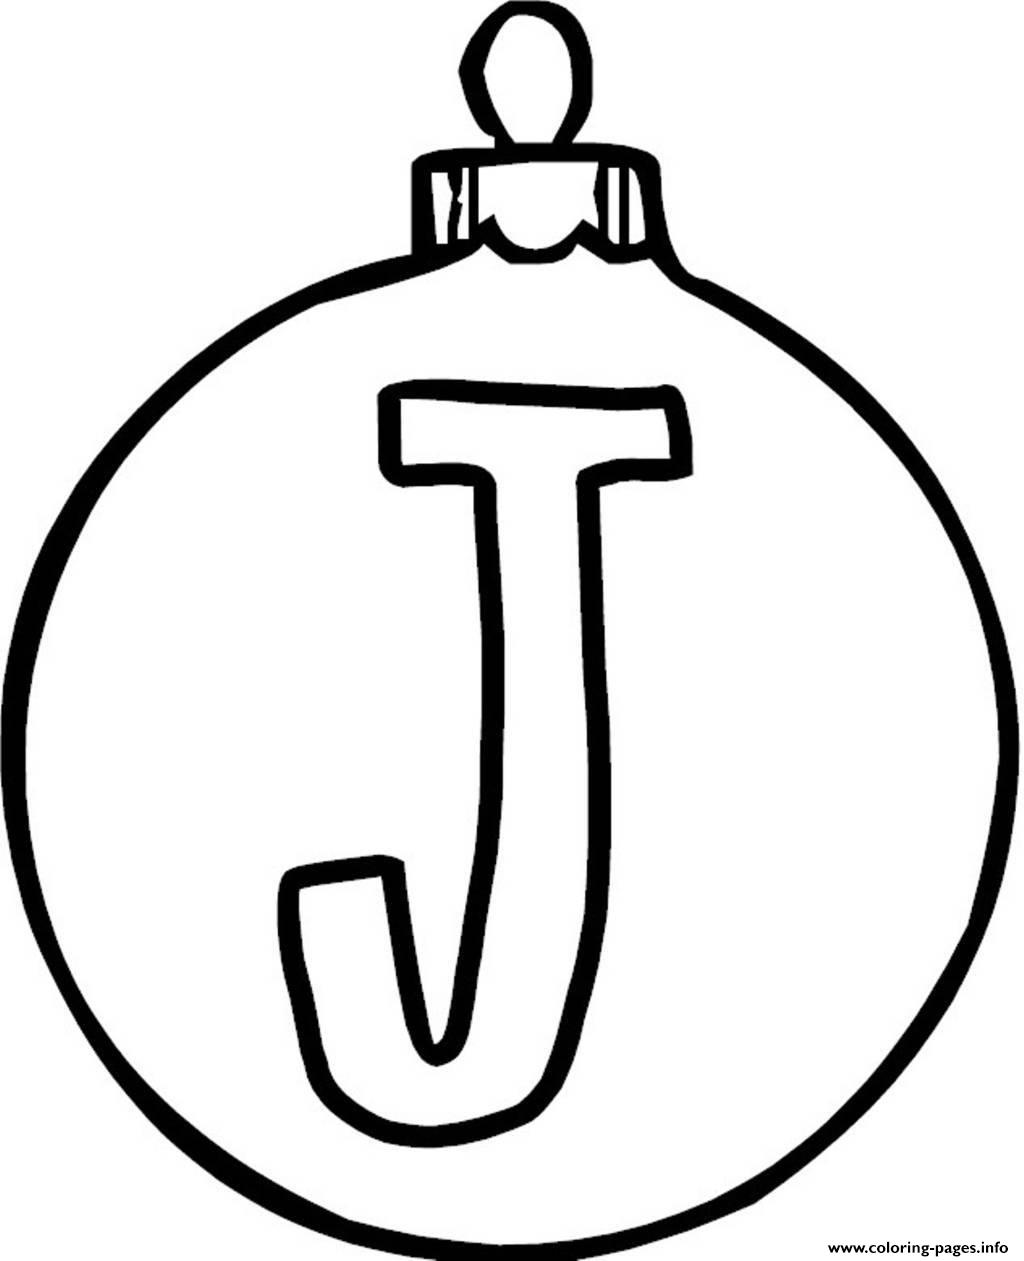 1024x1261 Perspective Ornament Coloring Pages To Print Love Christmas